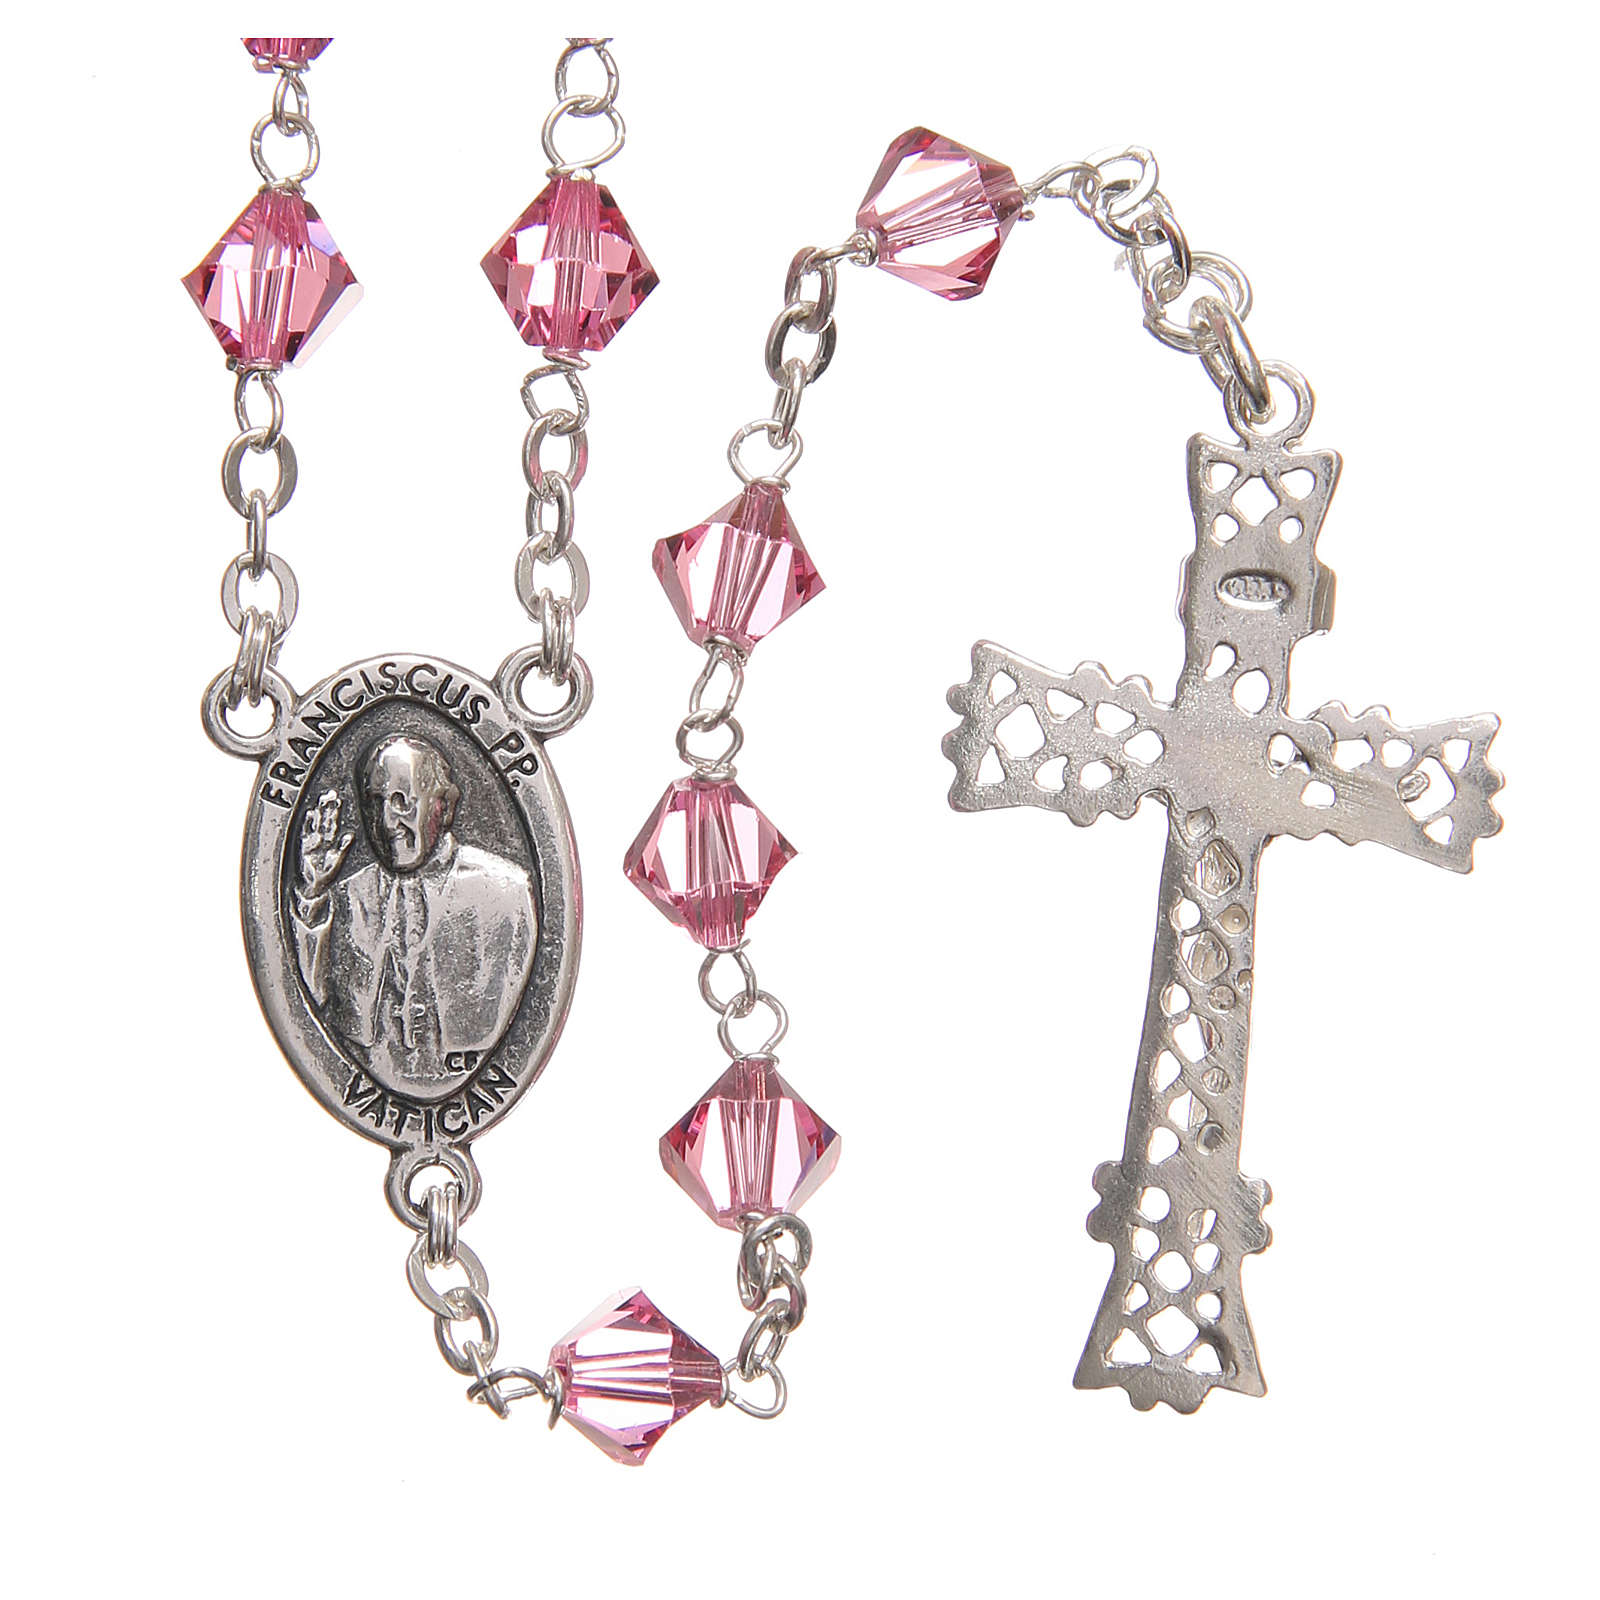 STOCK Rosary beads in Swarovski and sterling silver with Jubilee symbol 6mm pink 4